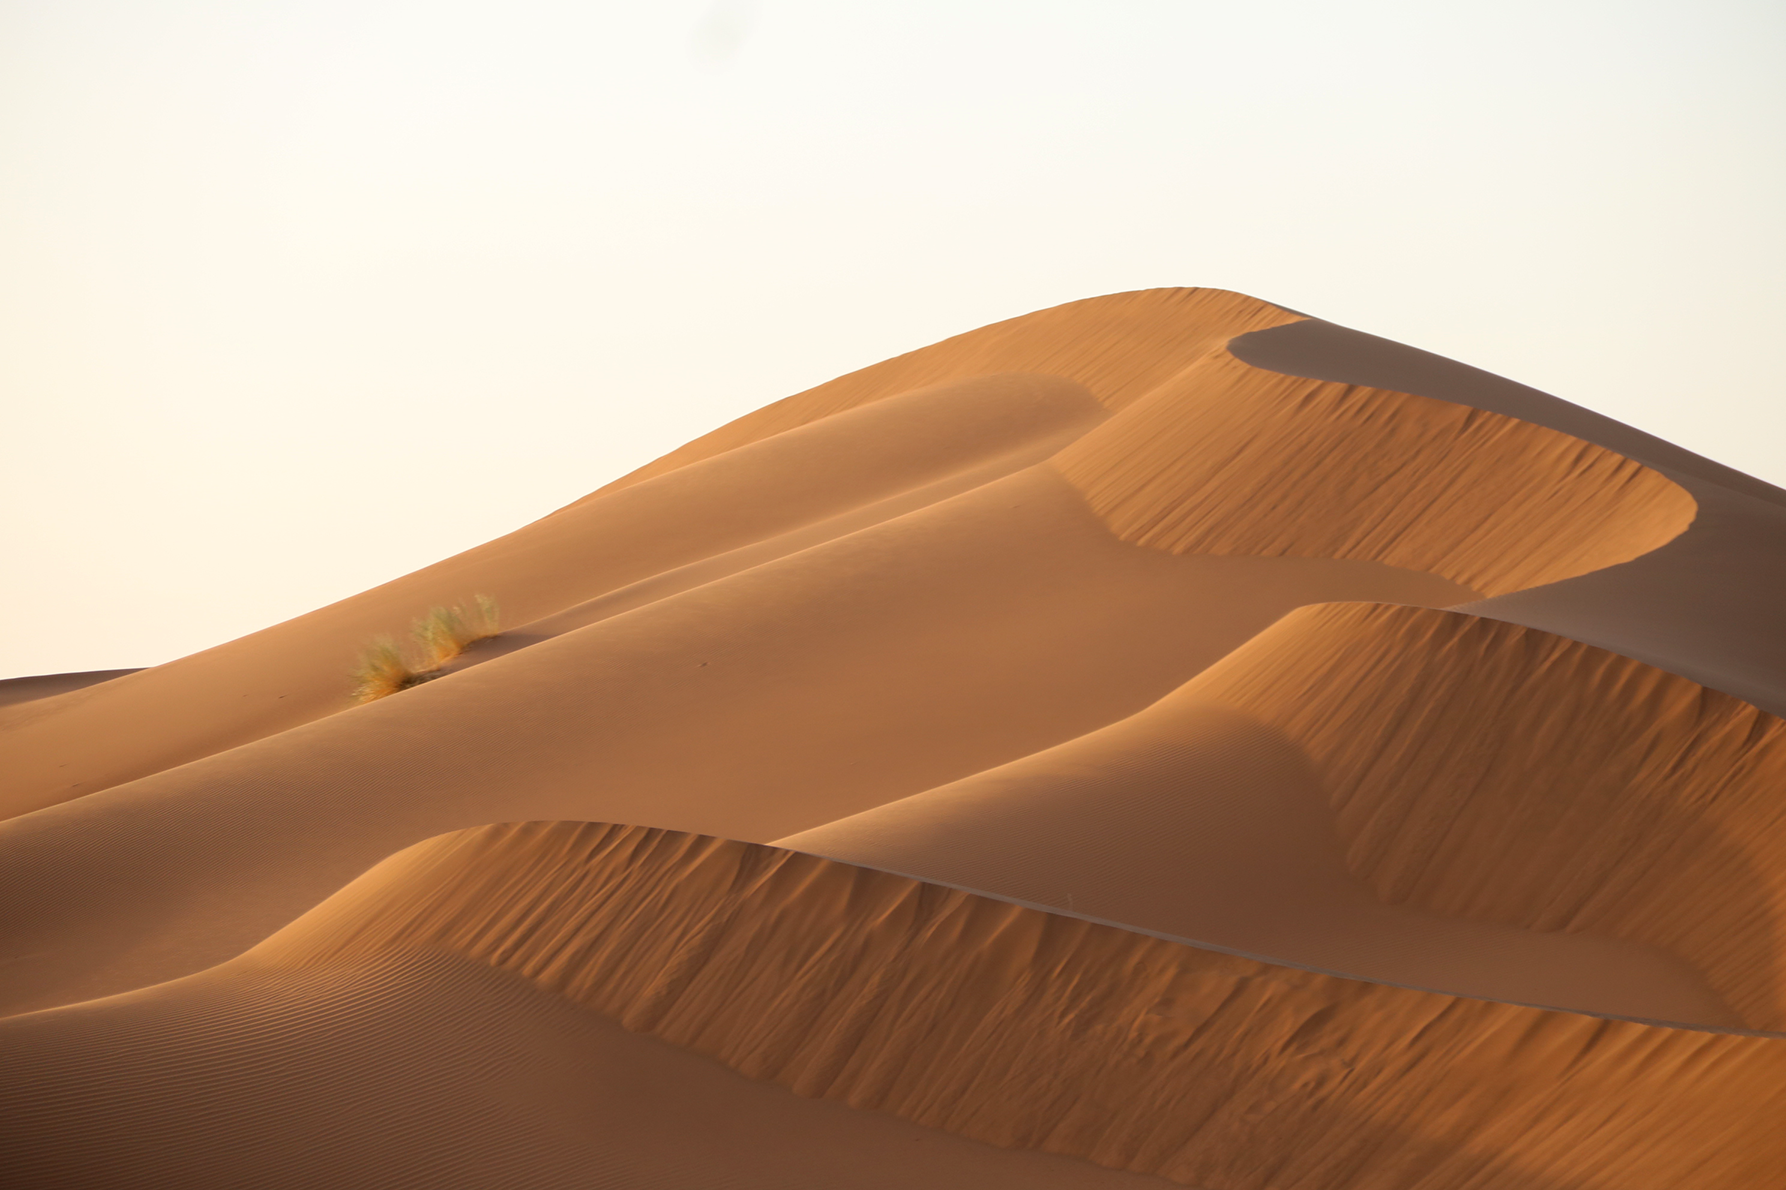 The Sahara stretches through much of North Africa, including parts of Morocco.